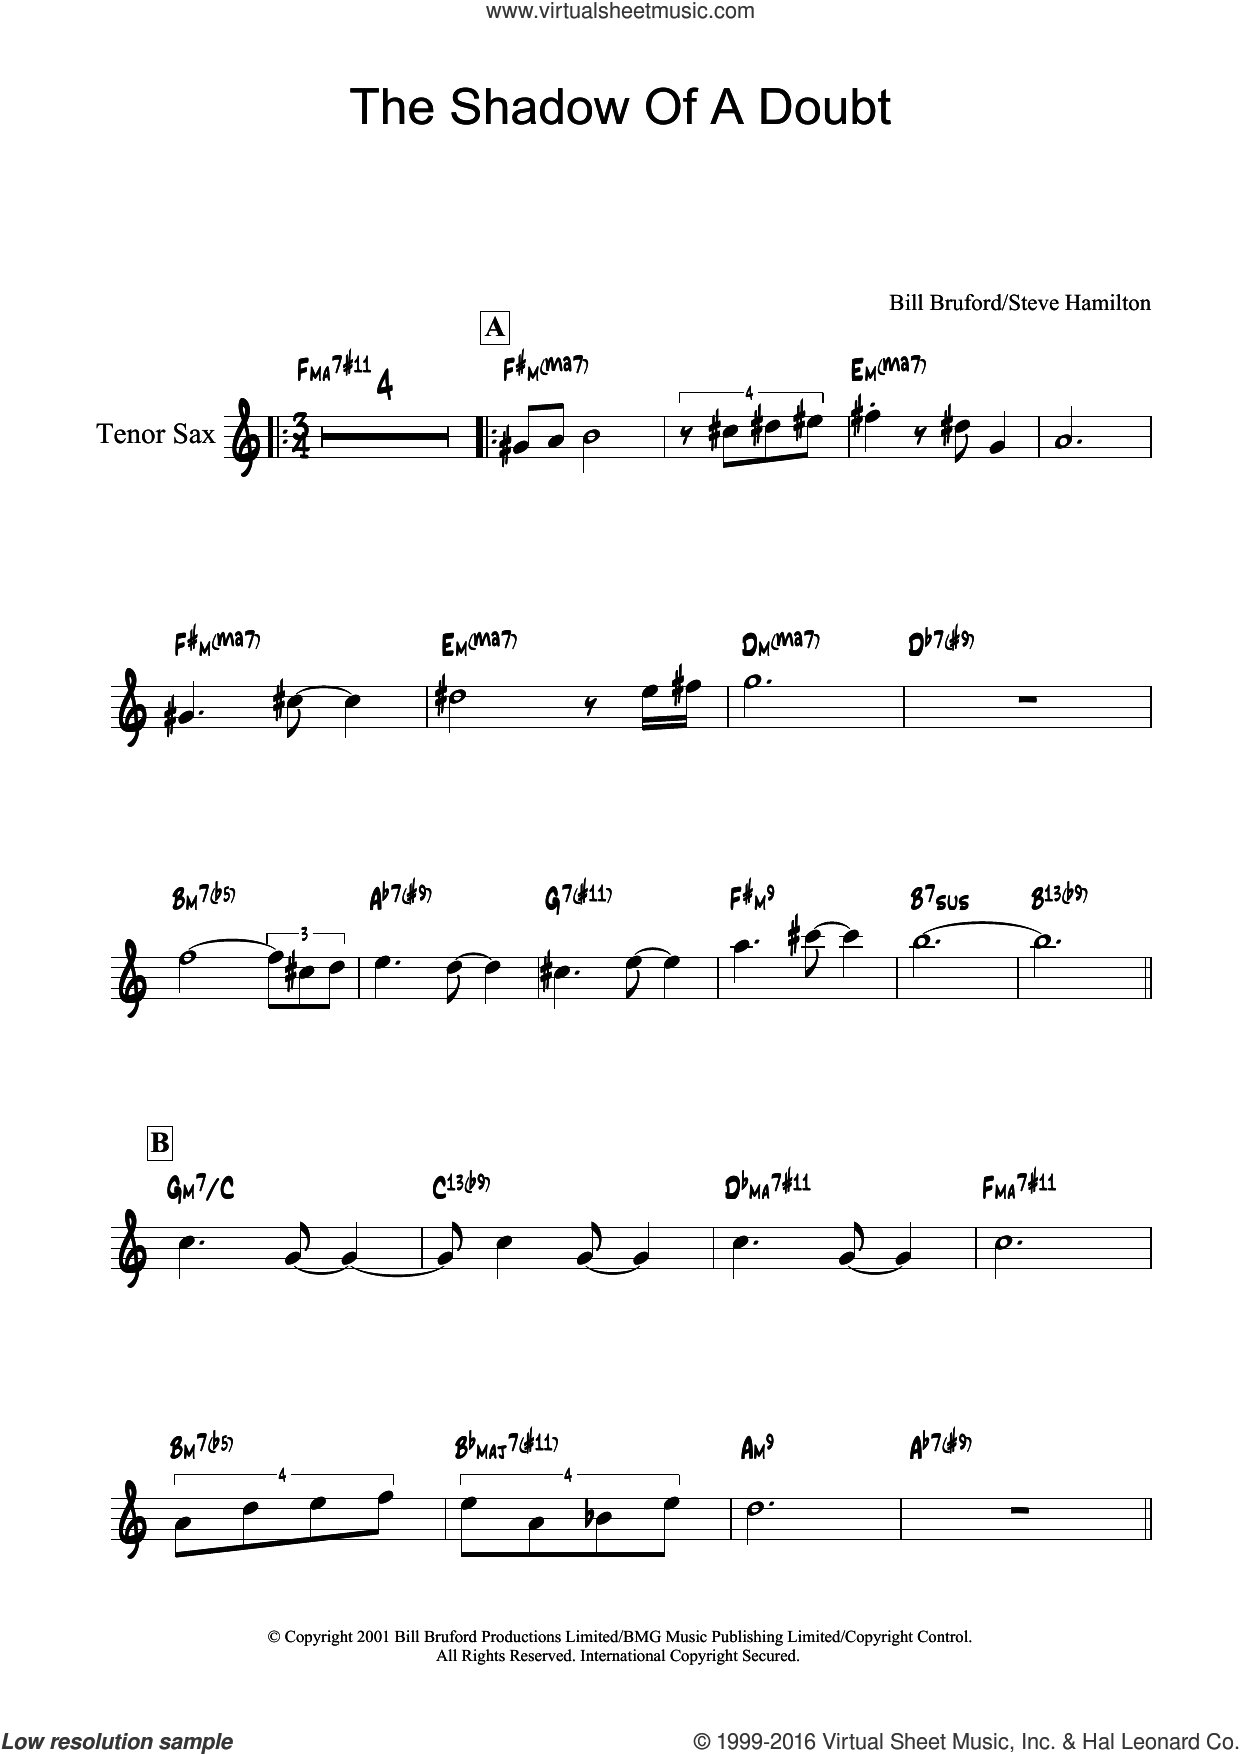 The Shadow Of A Doubt sheet music for tenor saxophone solo by Bill Bruford and Steve Hamilton, intermediate skill level